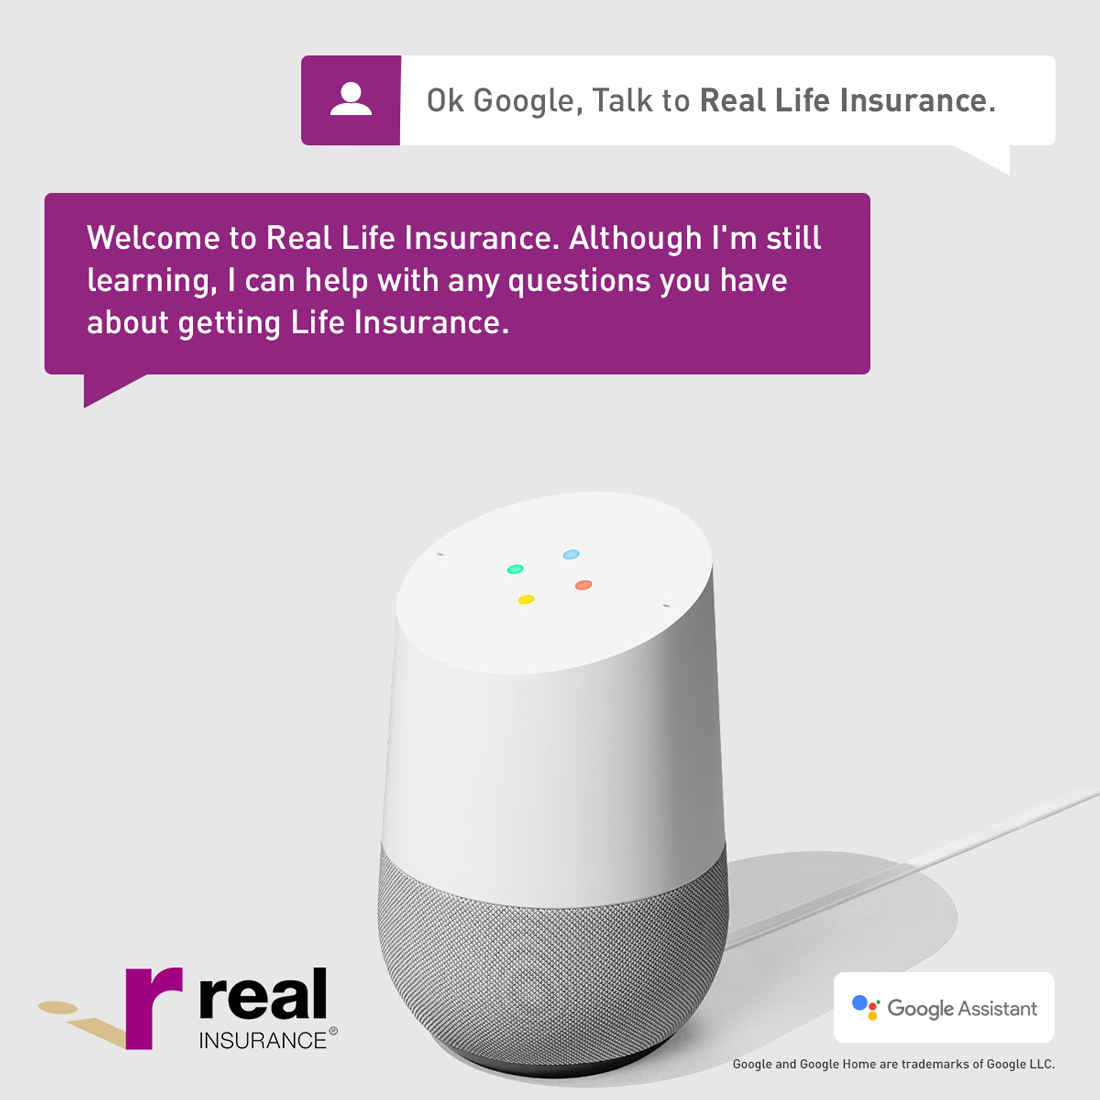 Real Insurance Google Assistant by Brandoutloud